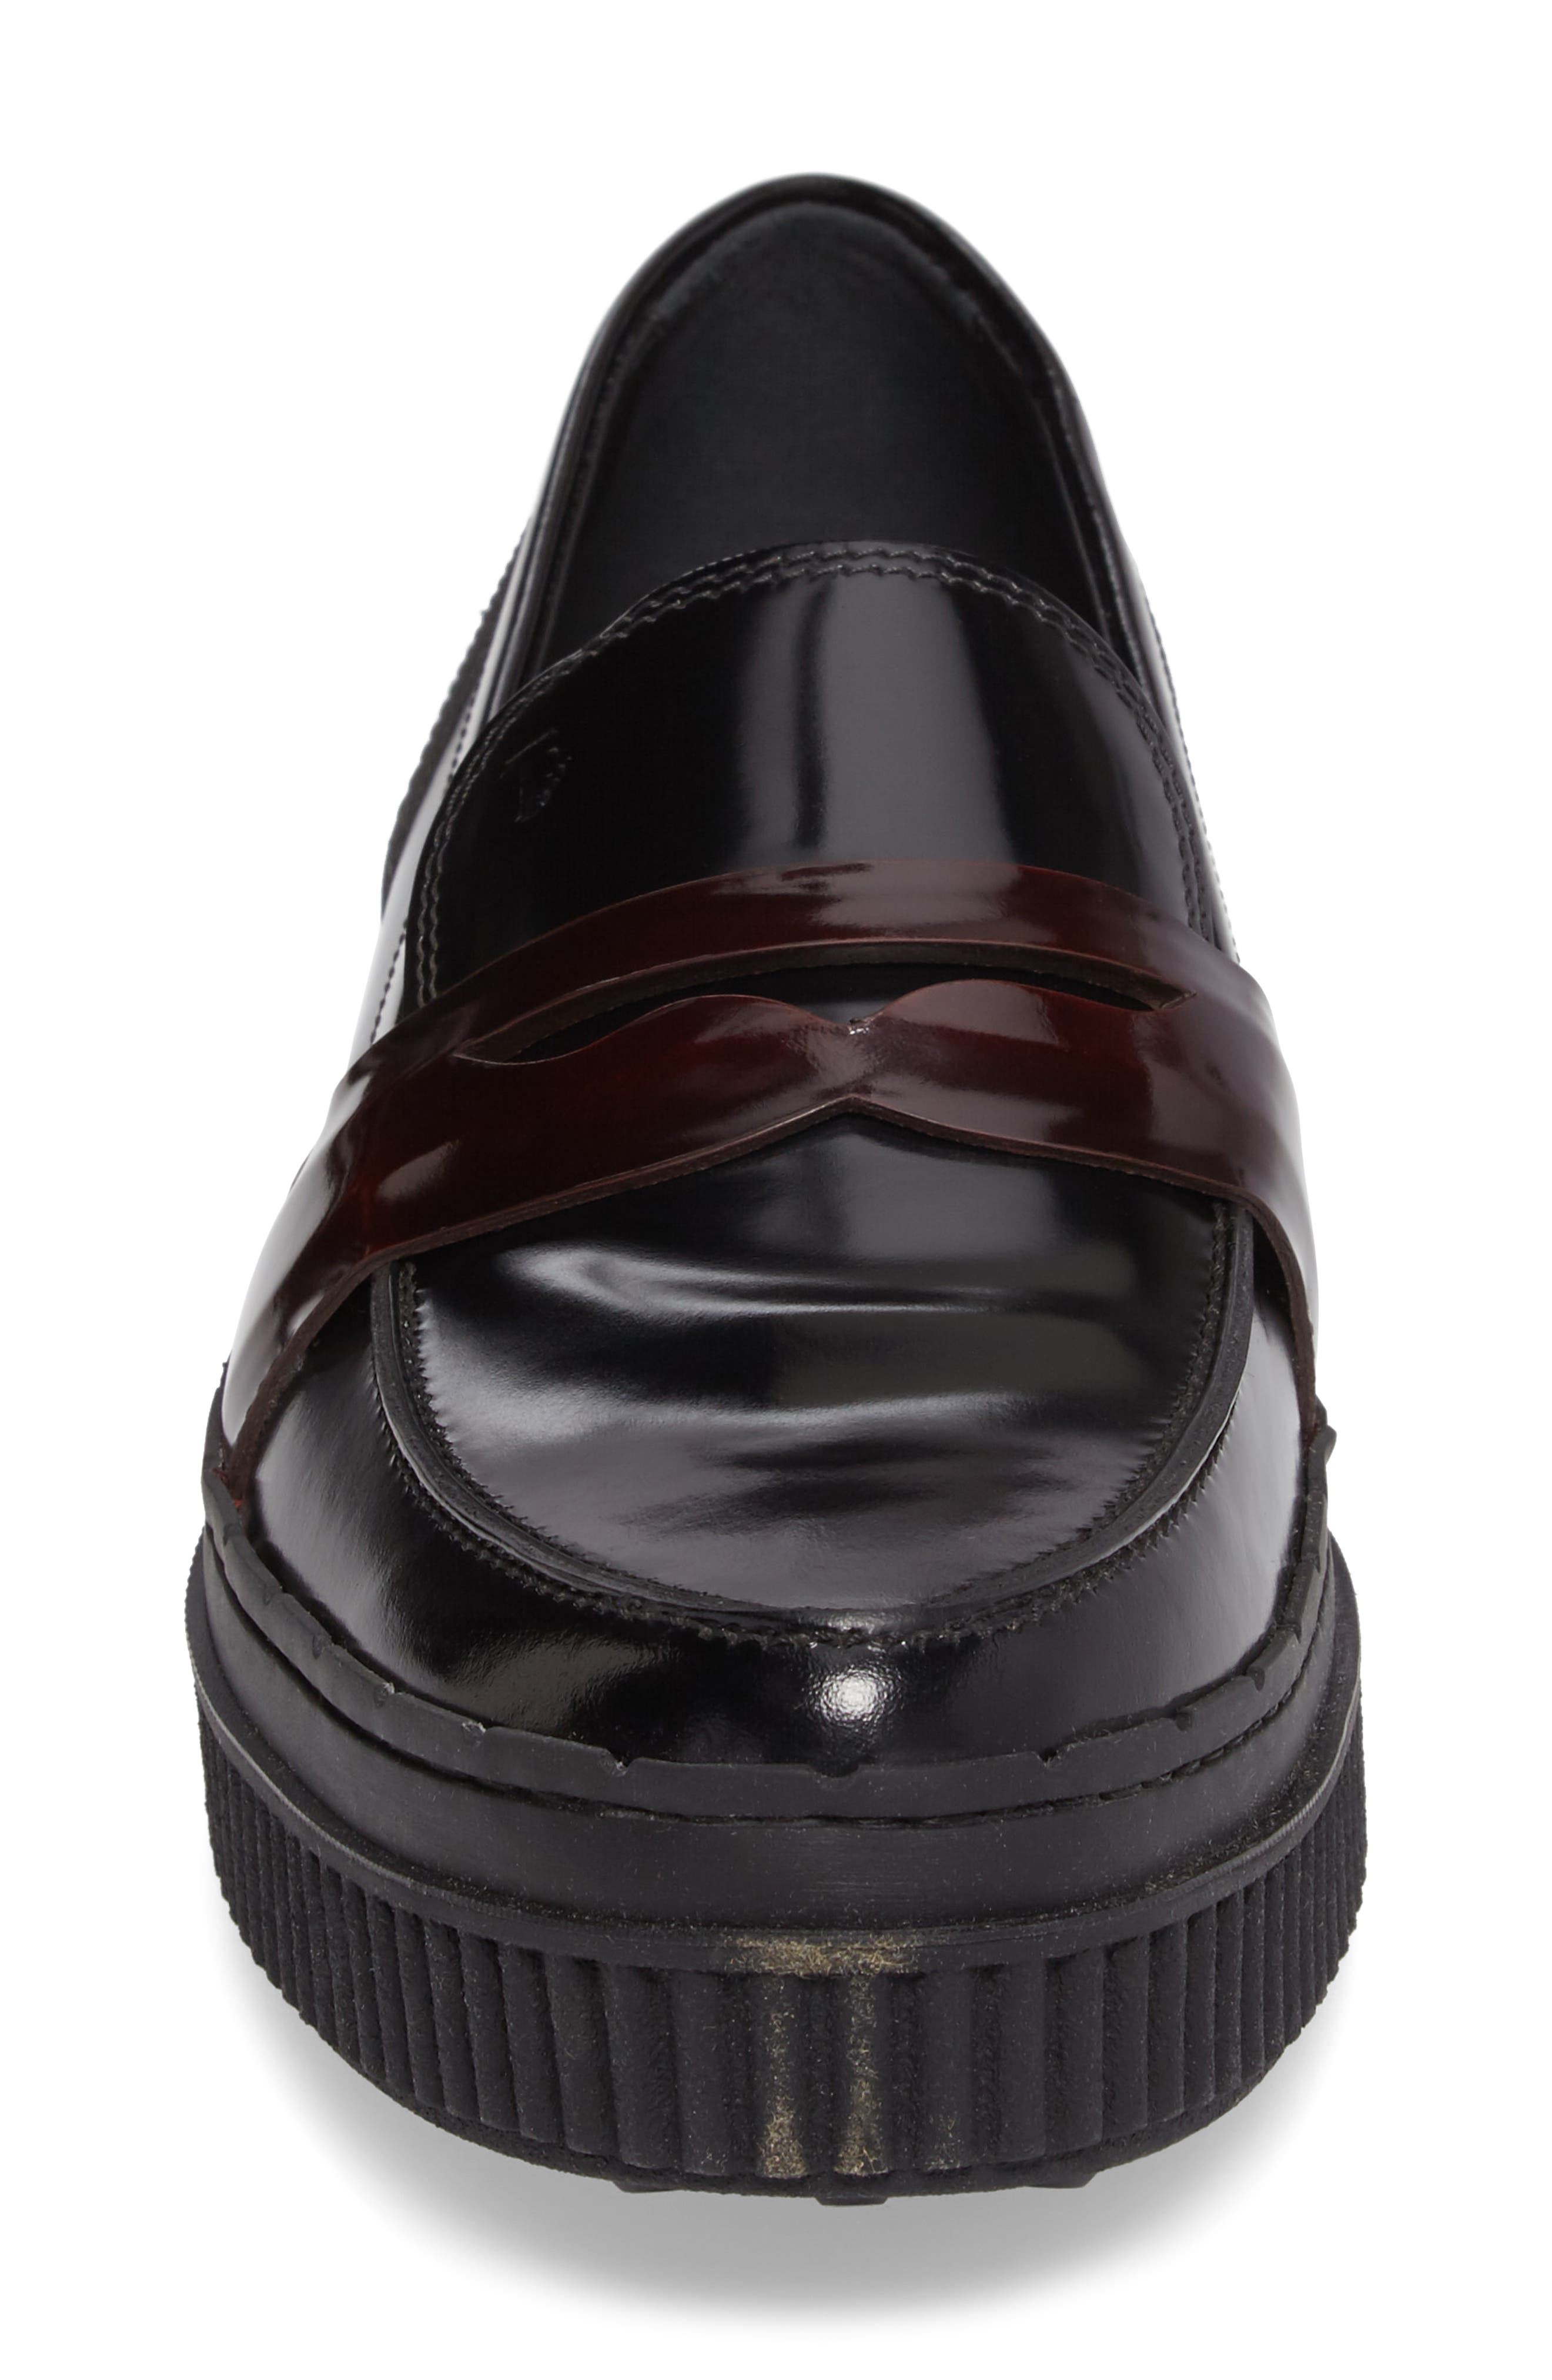 Penny Creeper Loafer,                             Alternate thumbnail 4, color,                             BLACK/ OXBLOOD